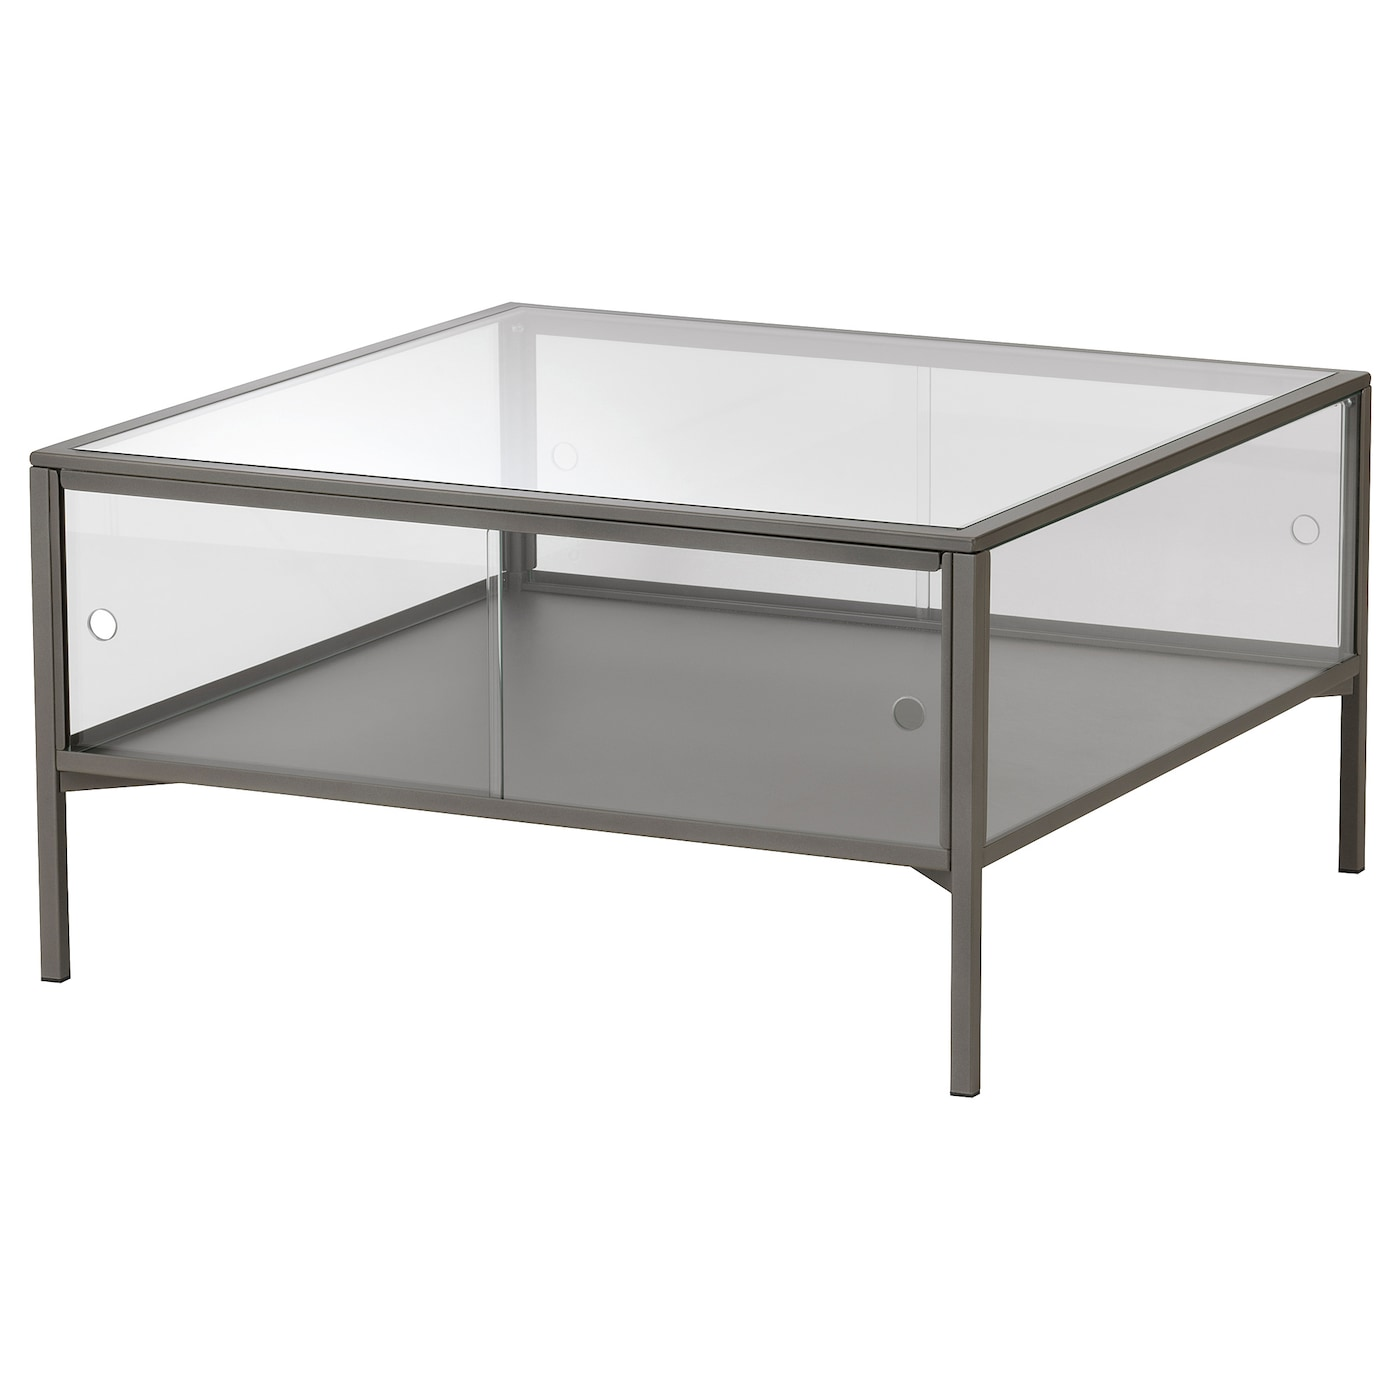 IKEA SAMMANHANG coffee table The table top in tempered glass is stain resistant and easy to clean.